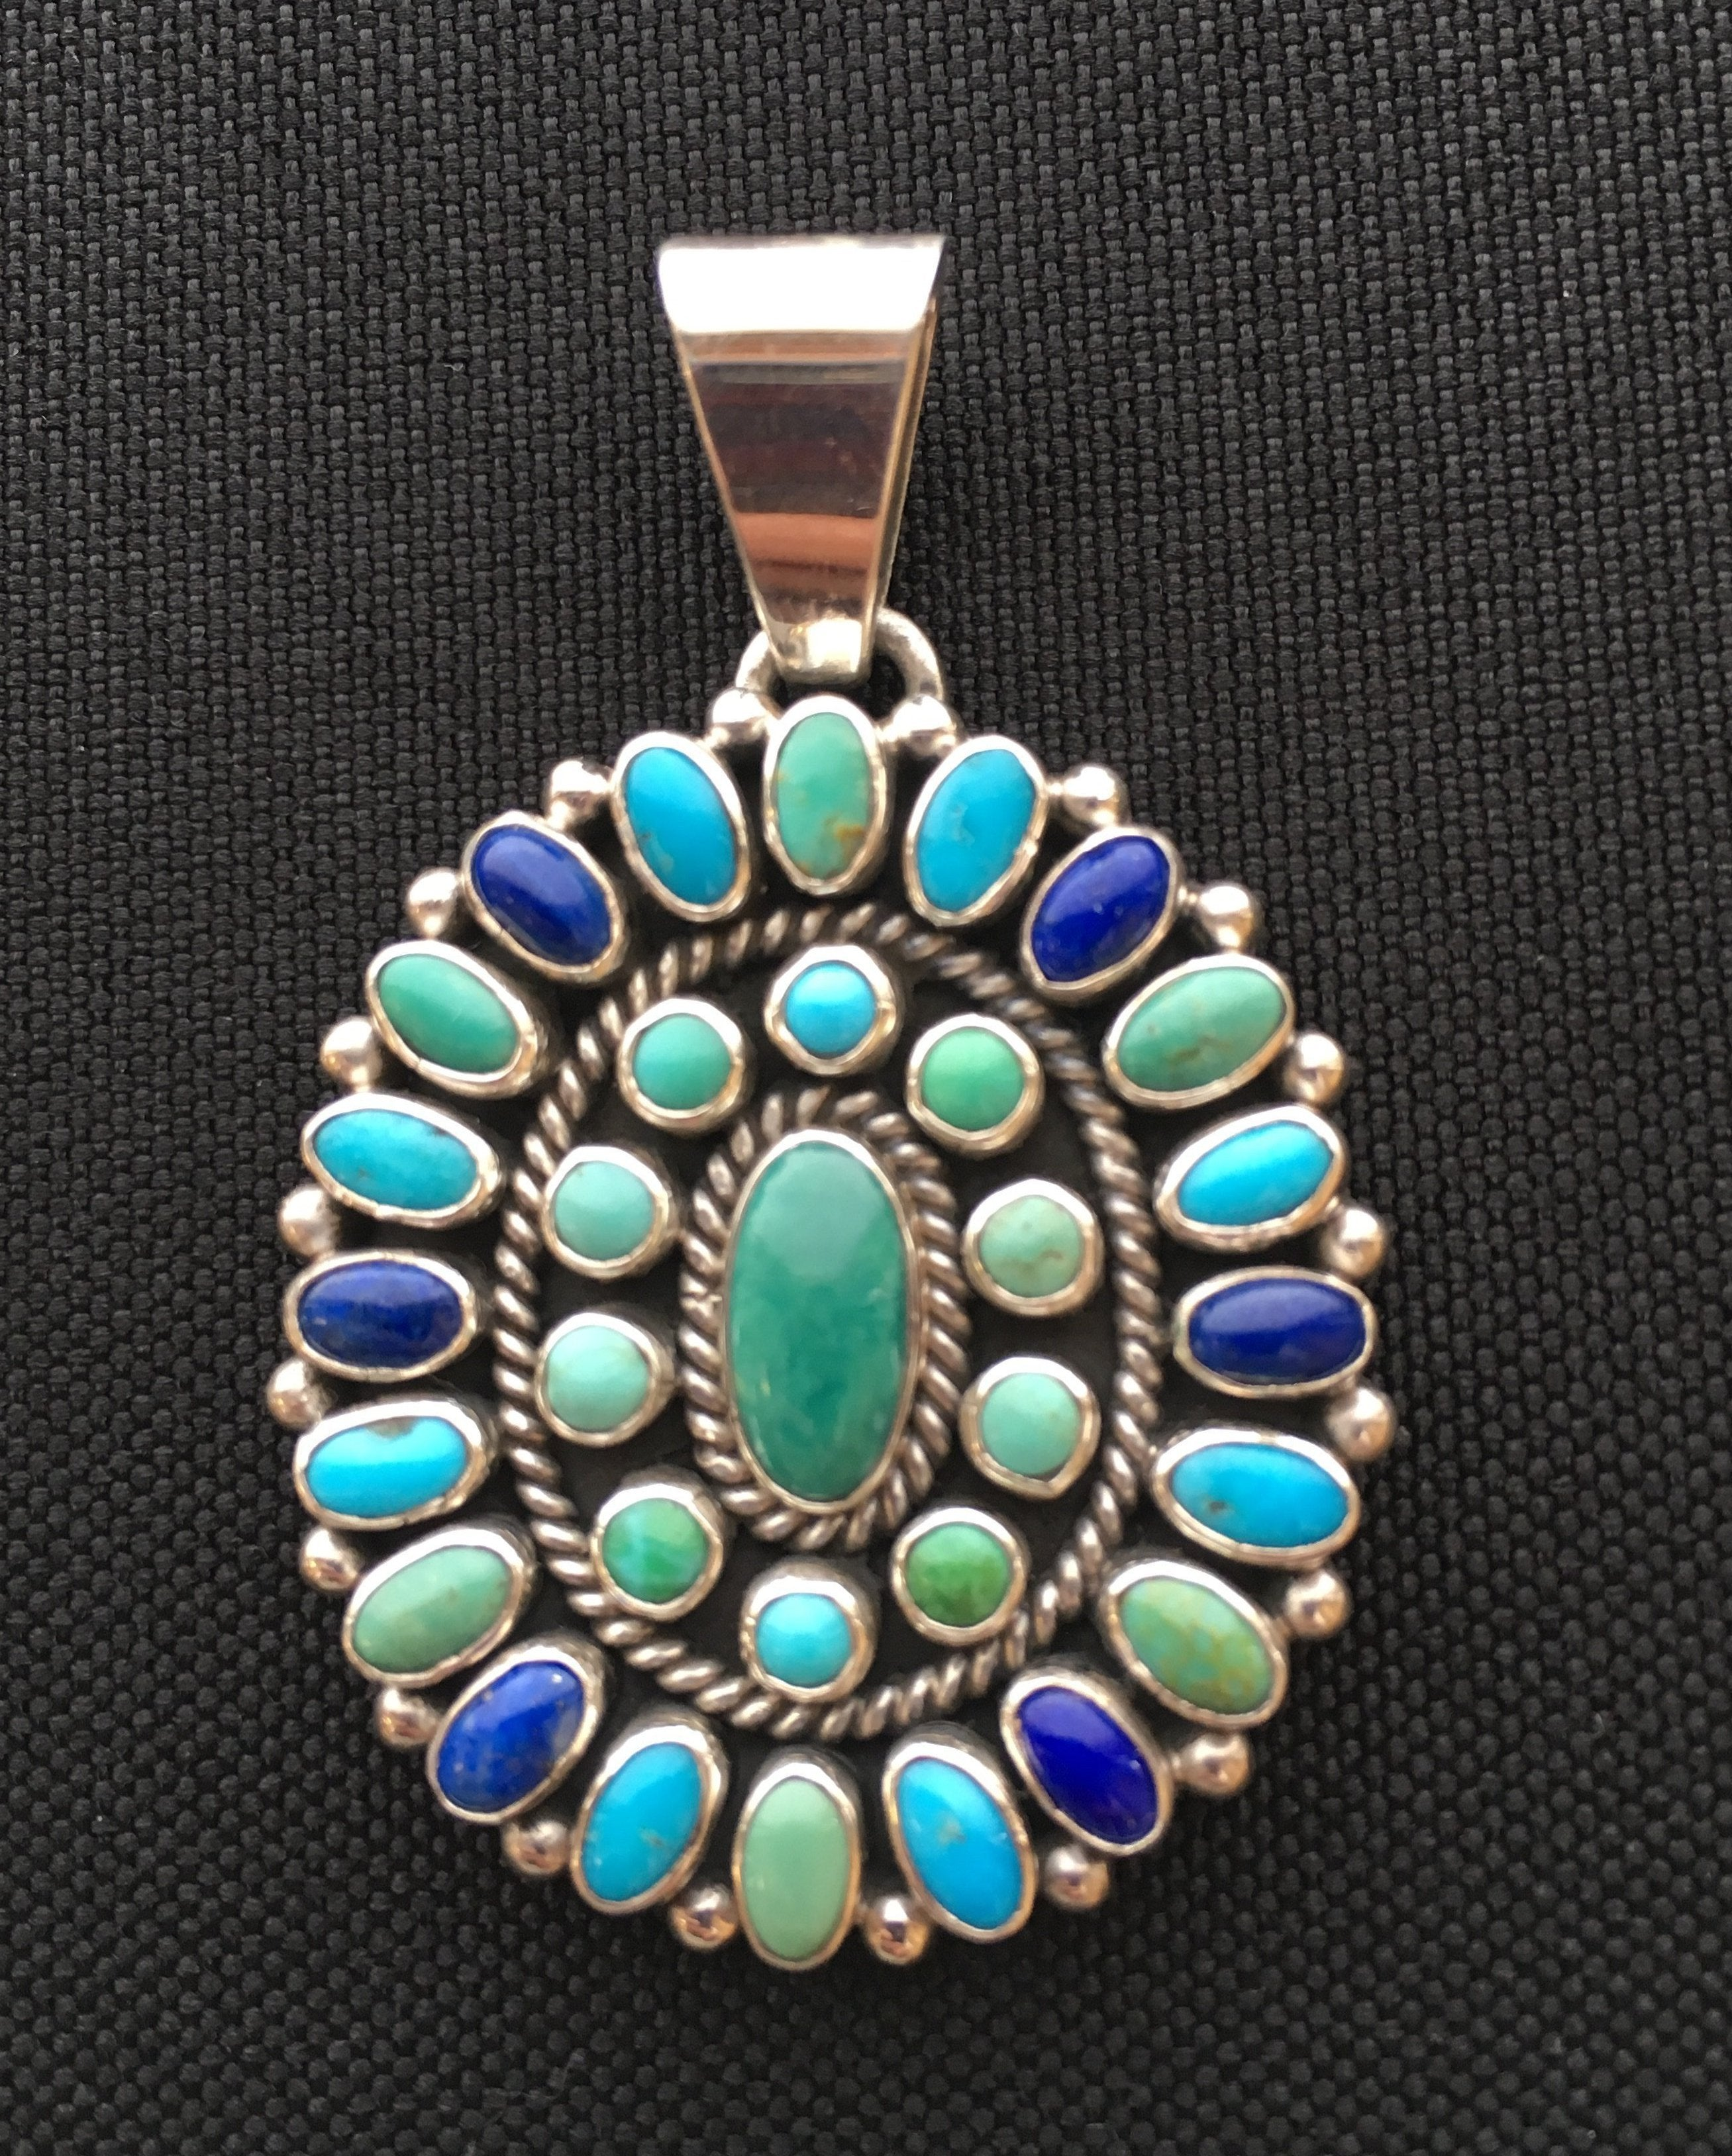 Turquoise Lapis and Varicite Multi-Stone Cluster Oval Pendant, by Dee Nez